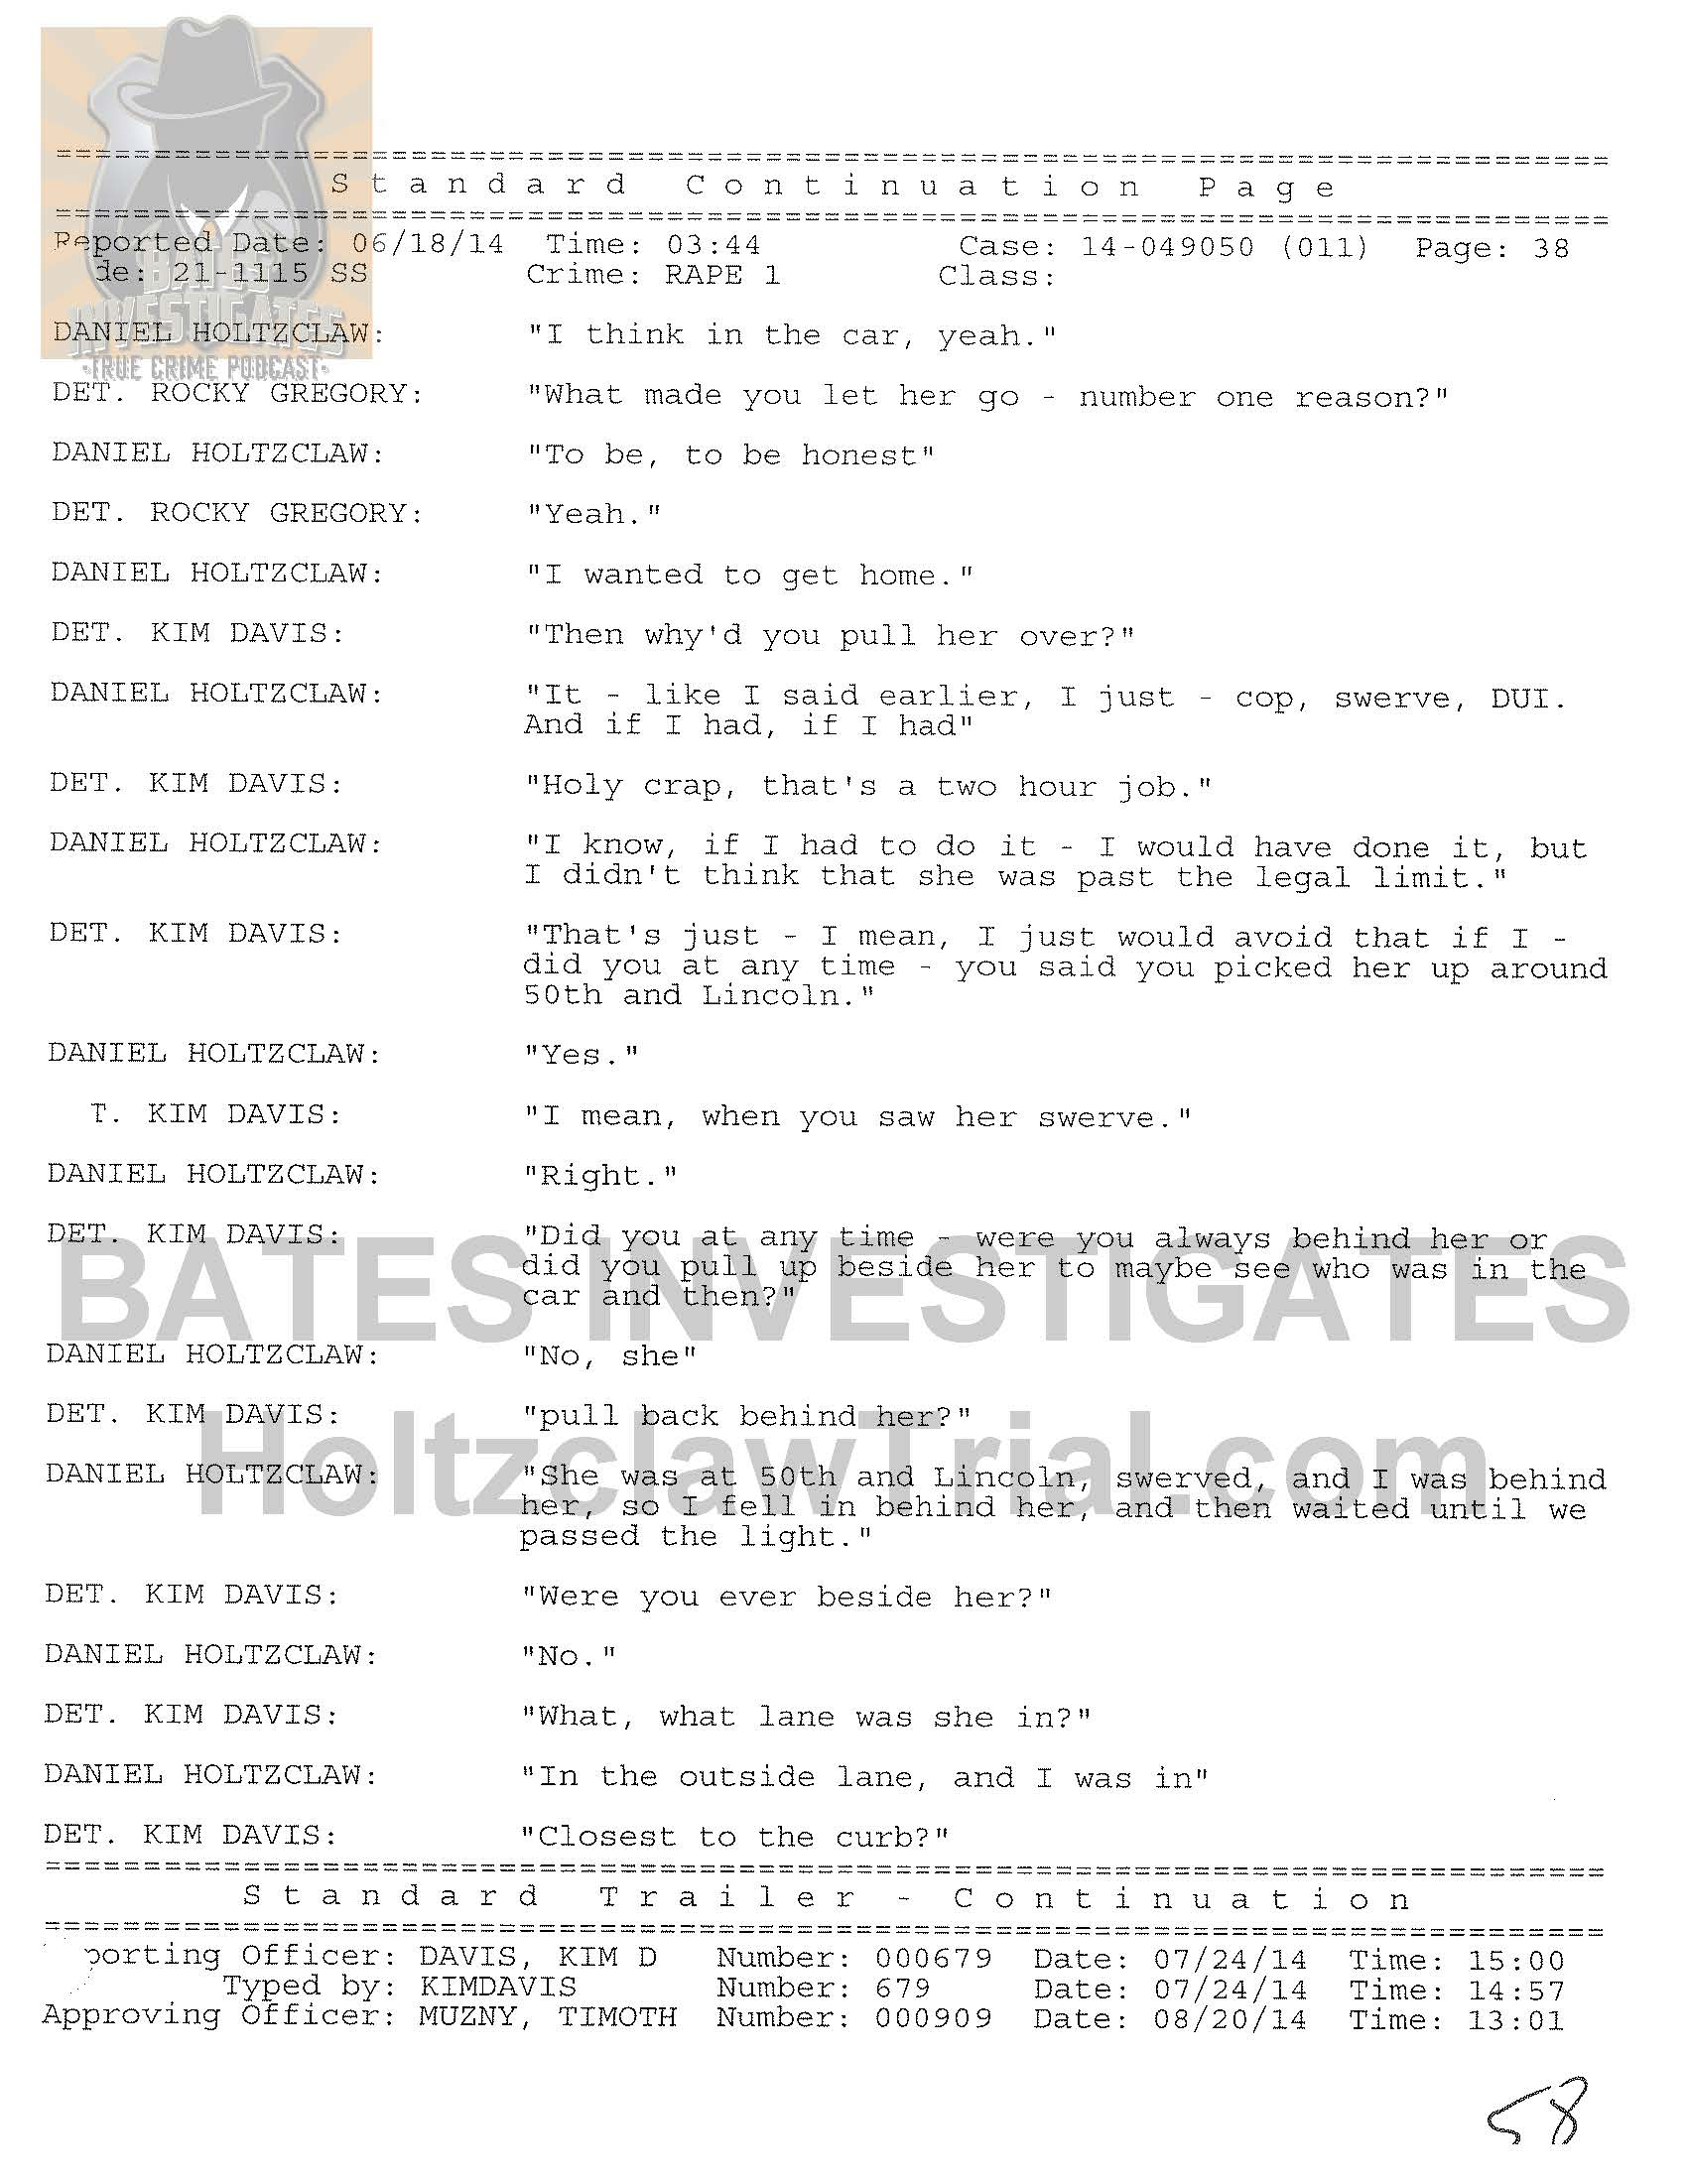 Holtzclaw Interrogation Transcript - Ep02 Redacted_Page_38.jpg